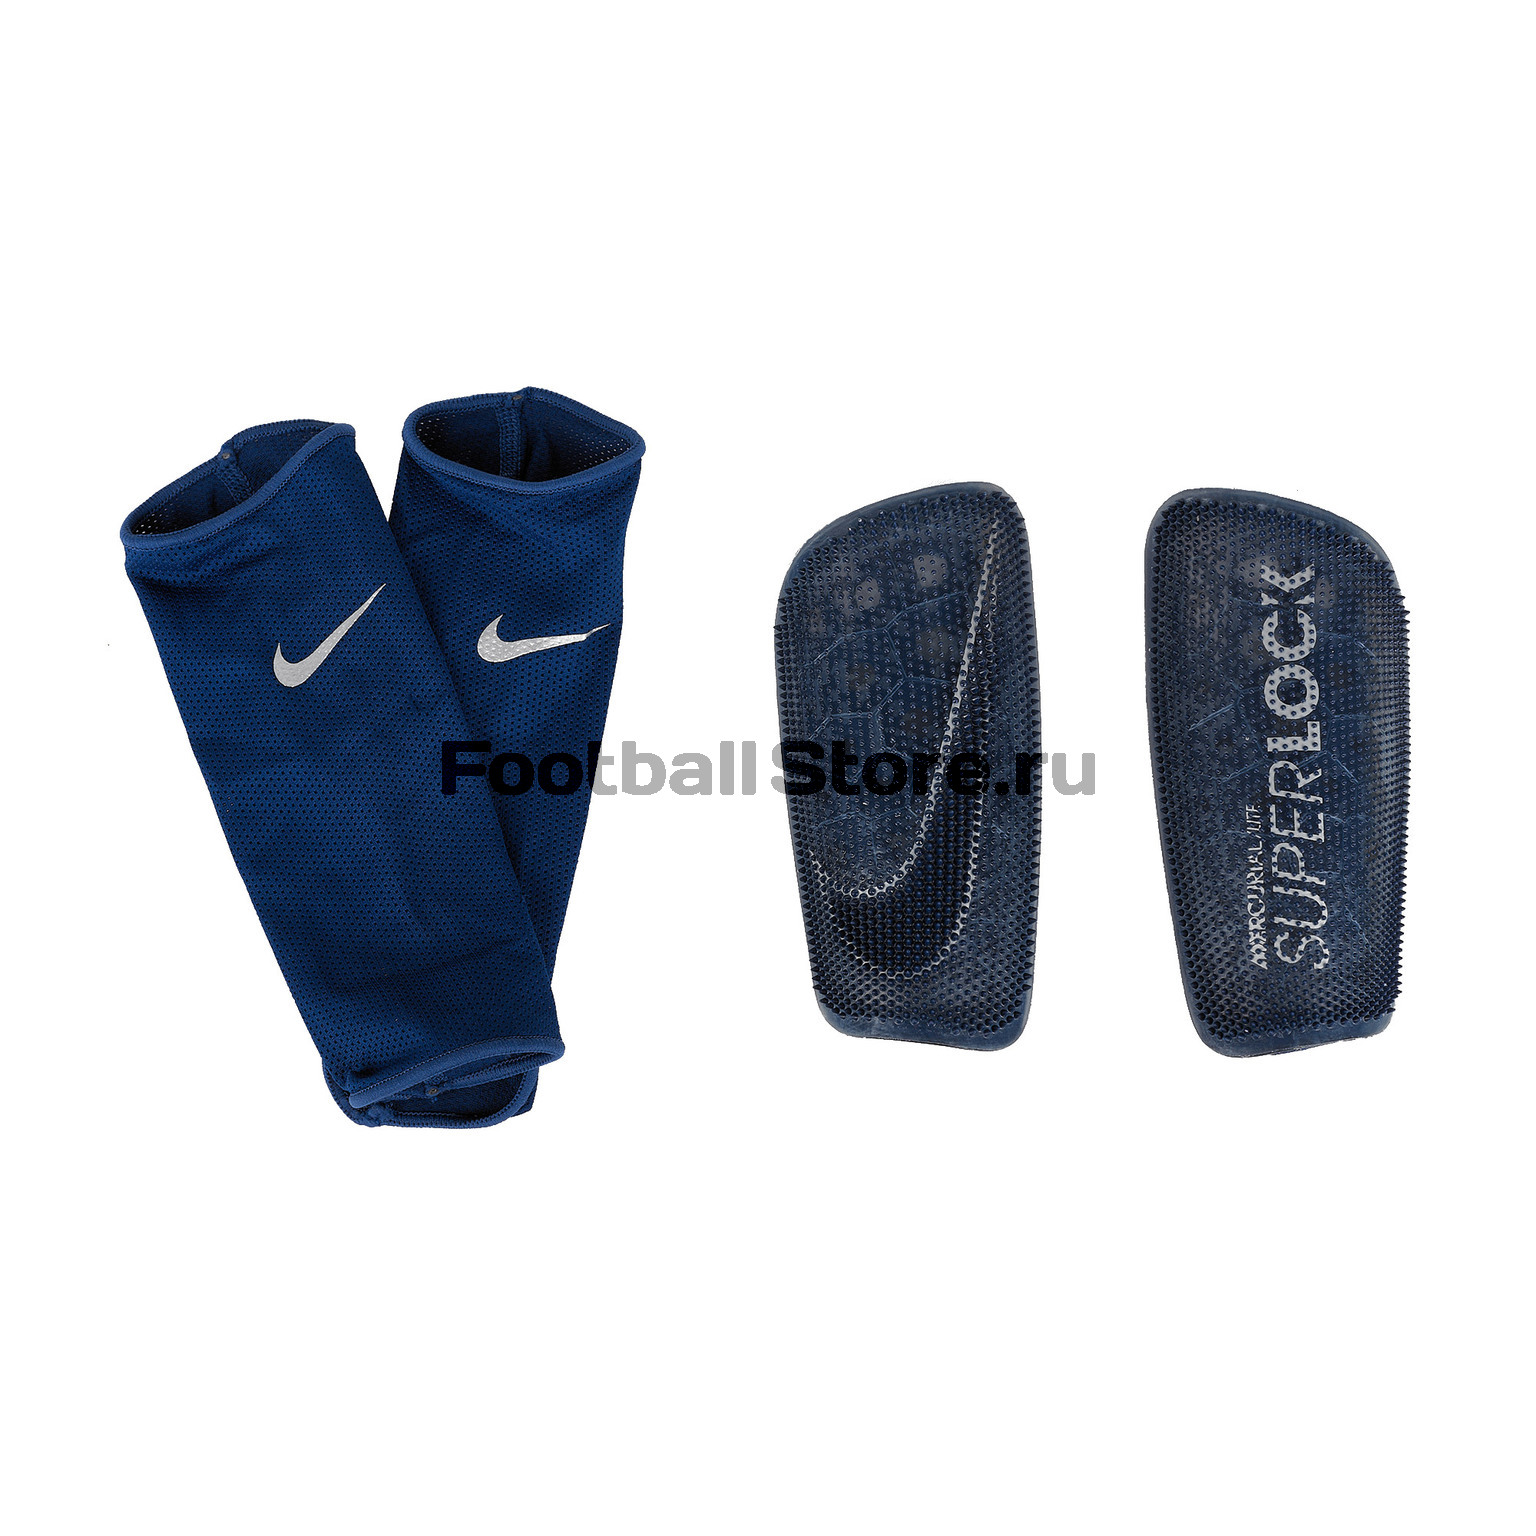 цена на Щитки Nike Mercurial Lite Superlock CK2167-493